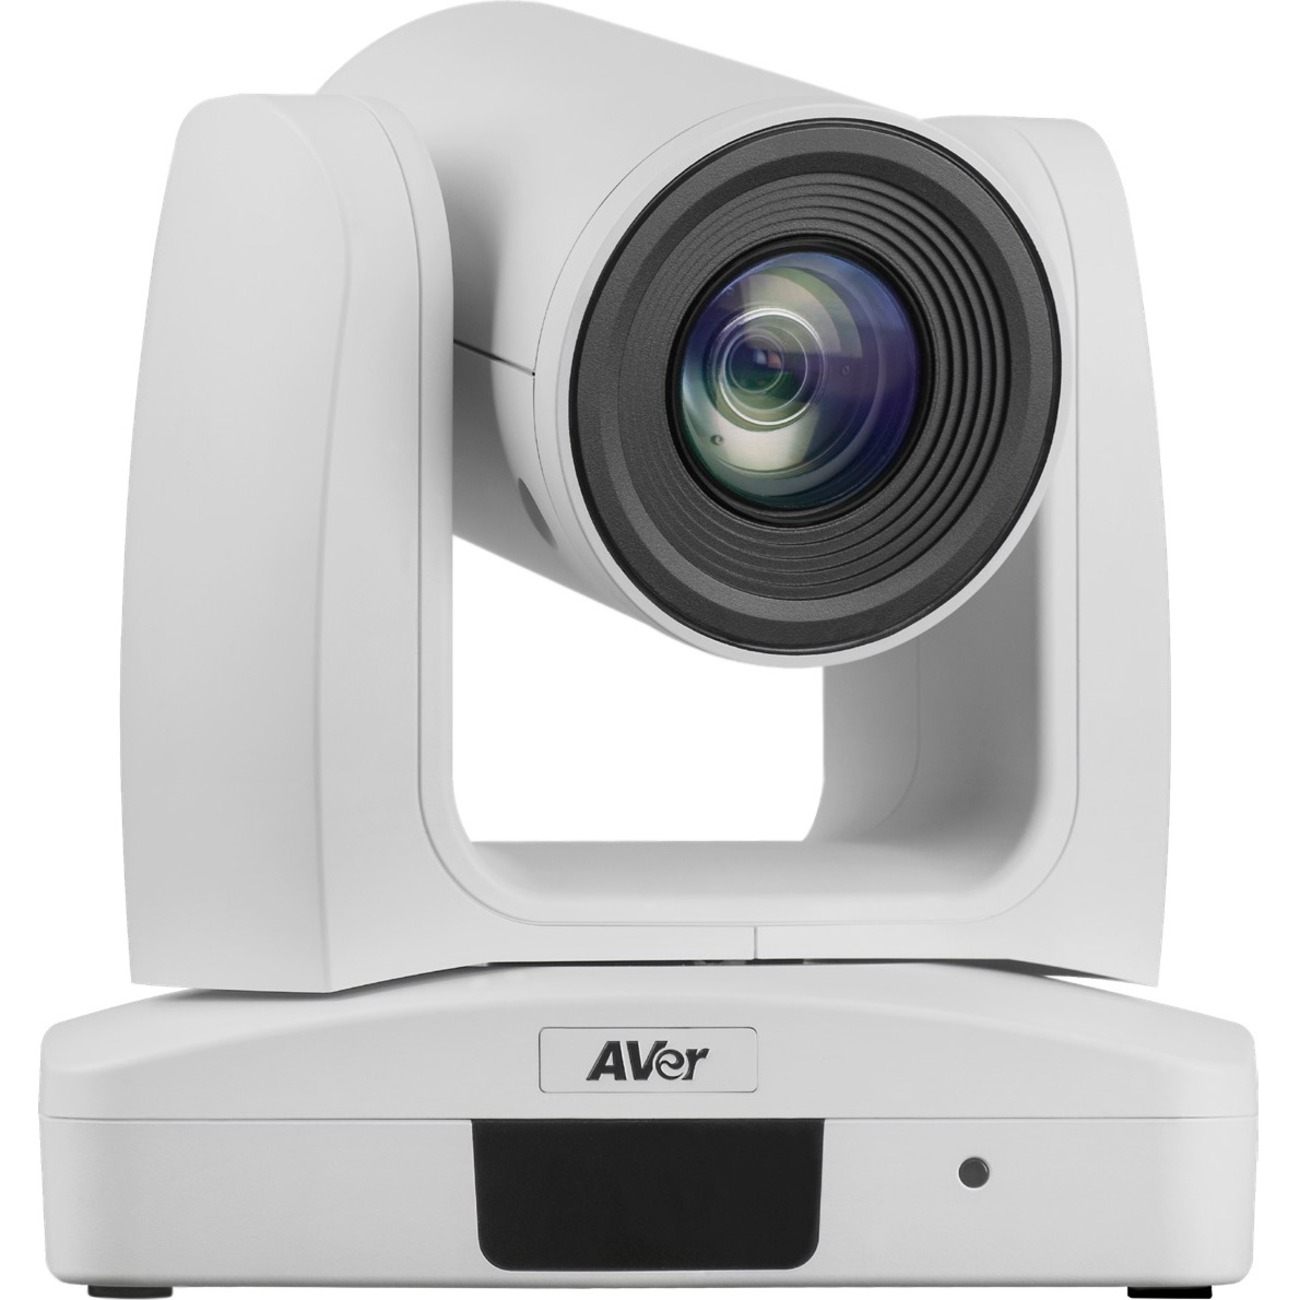 AVer PTZ310 Video Conferencing Camera - 2.1 Megapixel - 60 fps - White - USB 2.0 - TAA Compliant_subImage_1